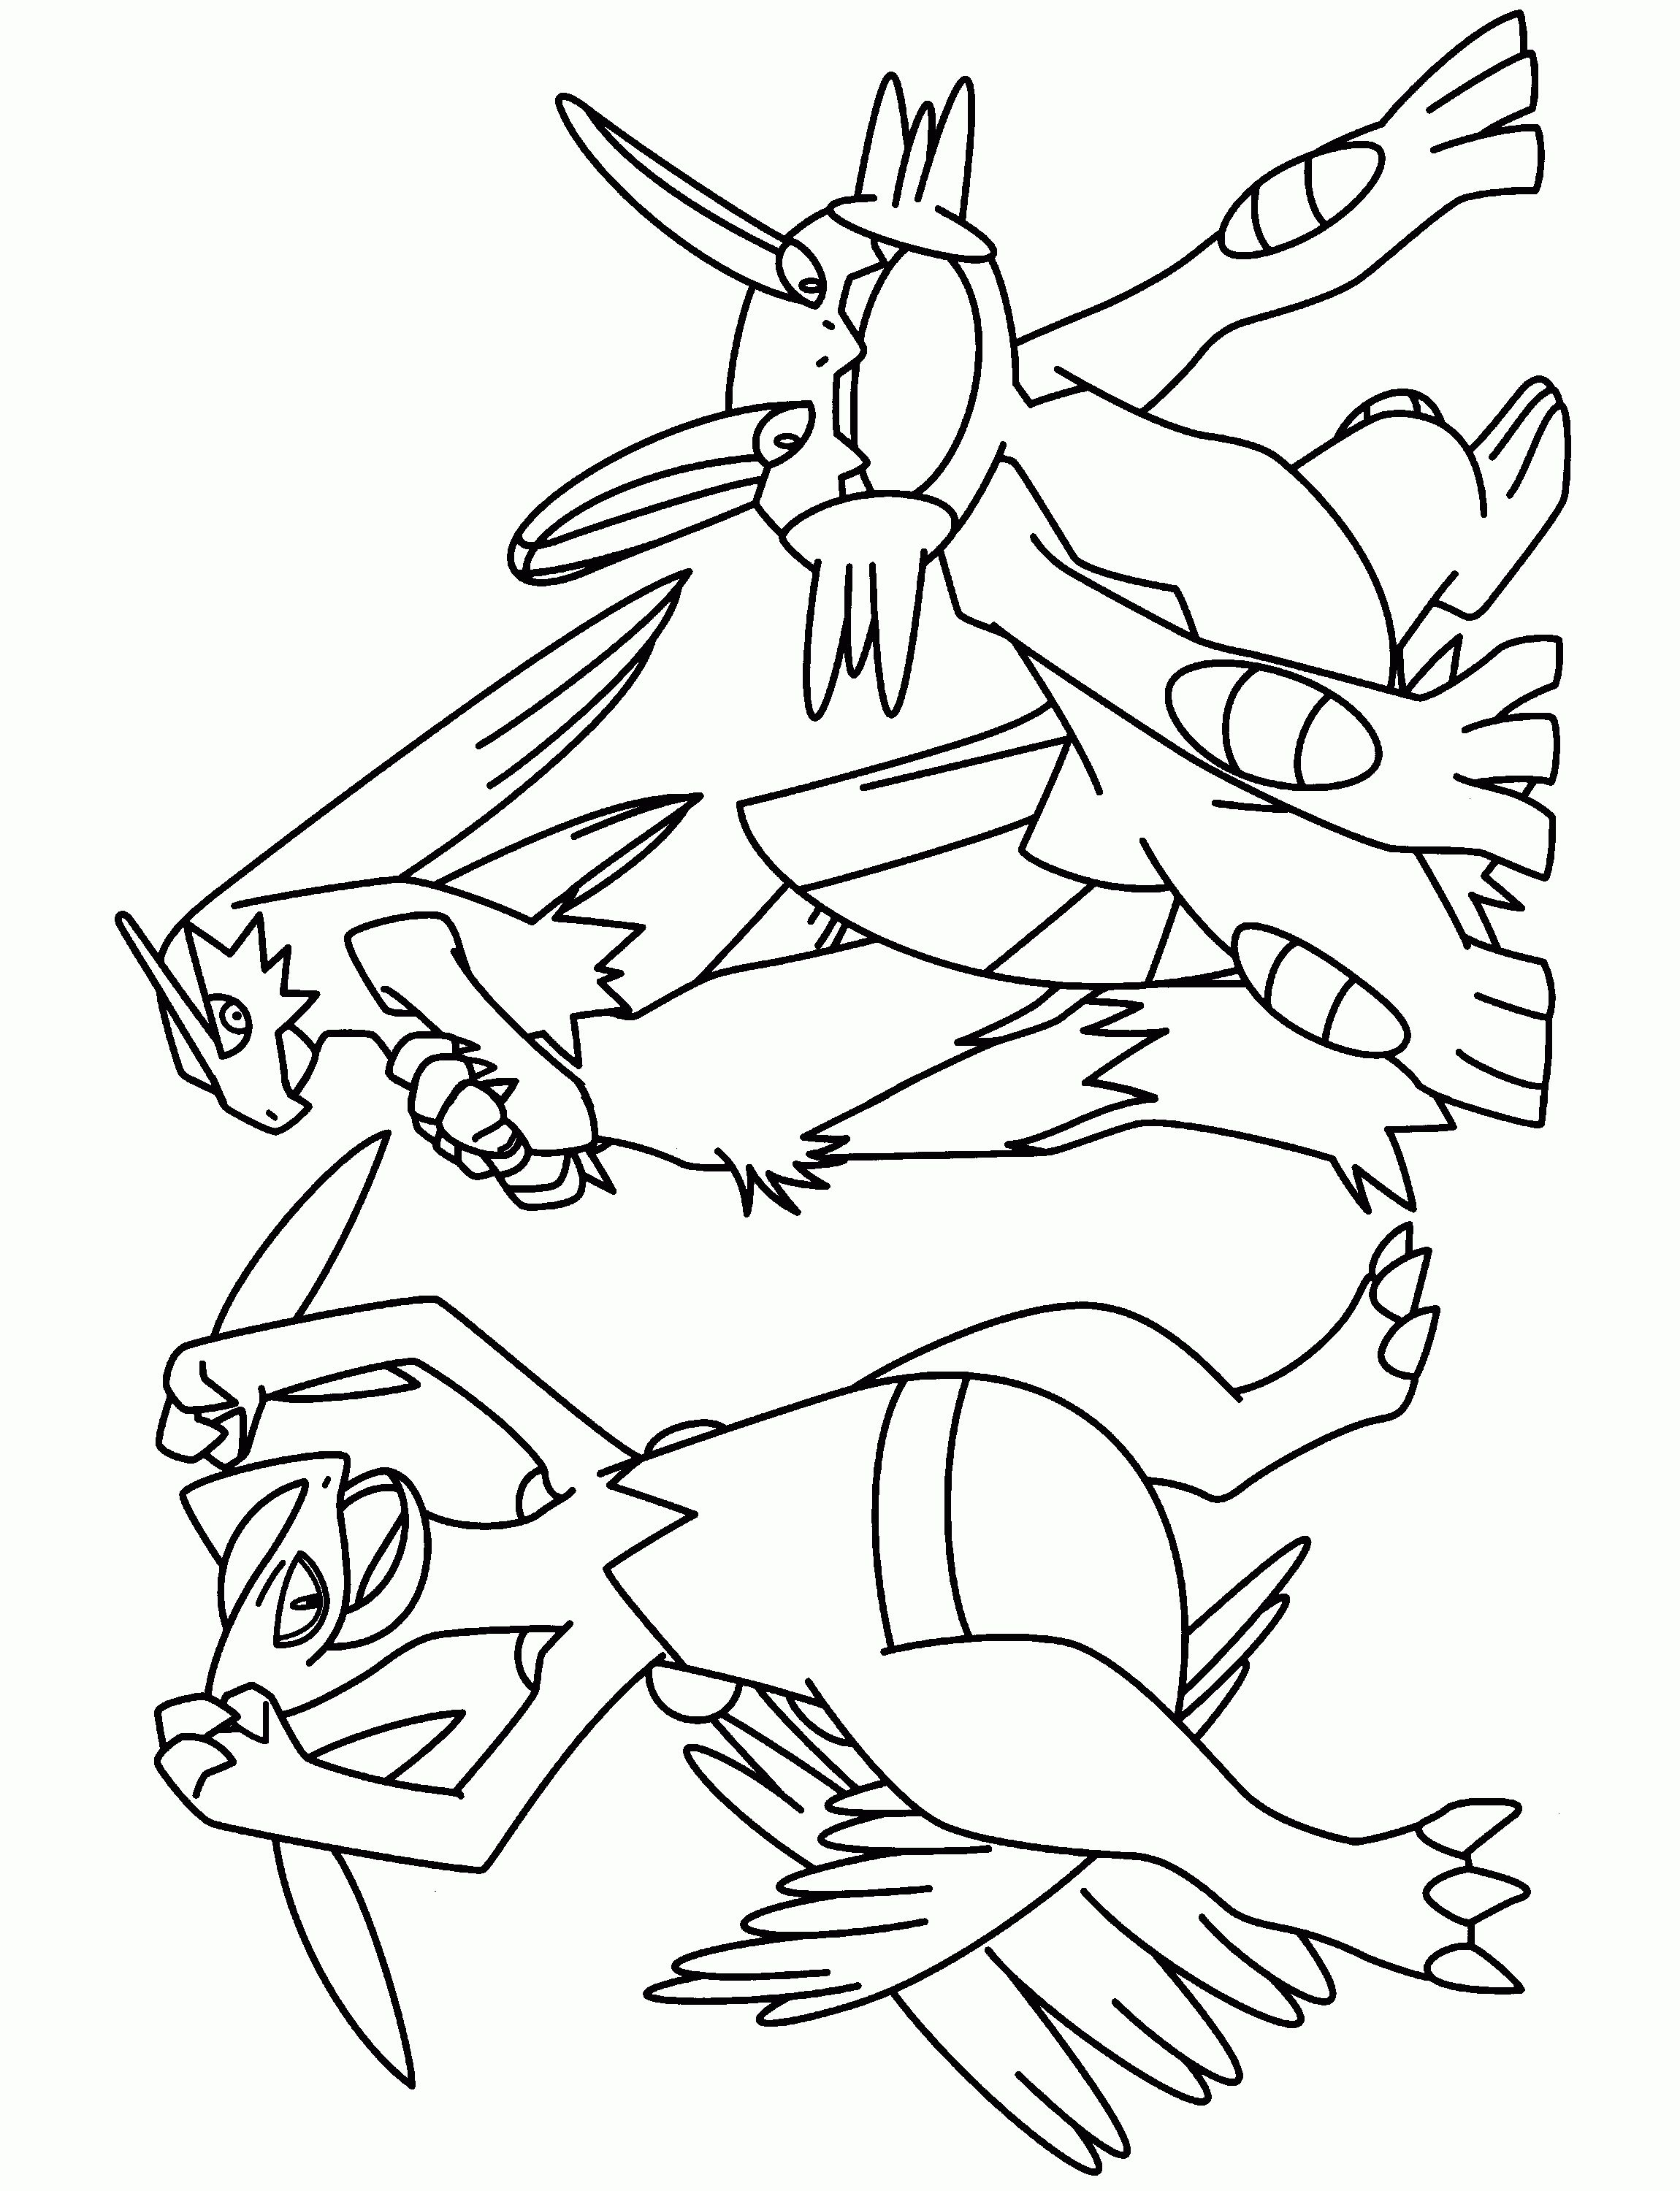 Pin By Lemrat On Coloriage Pokemon Coloring Pages Pokemon Advanced Coloring Pages